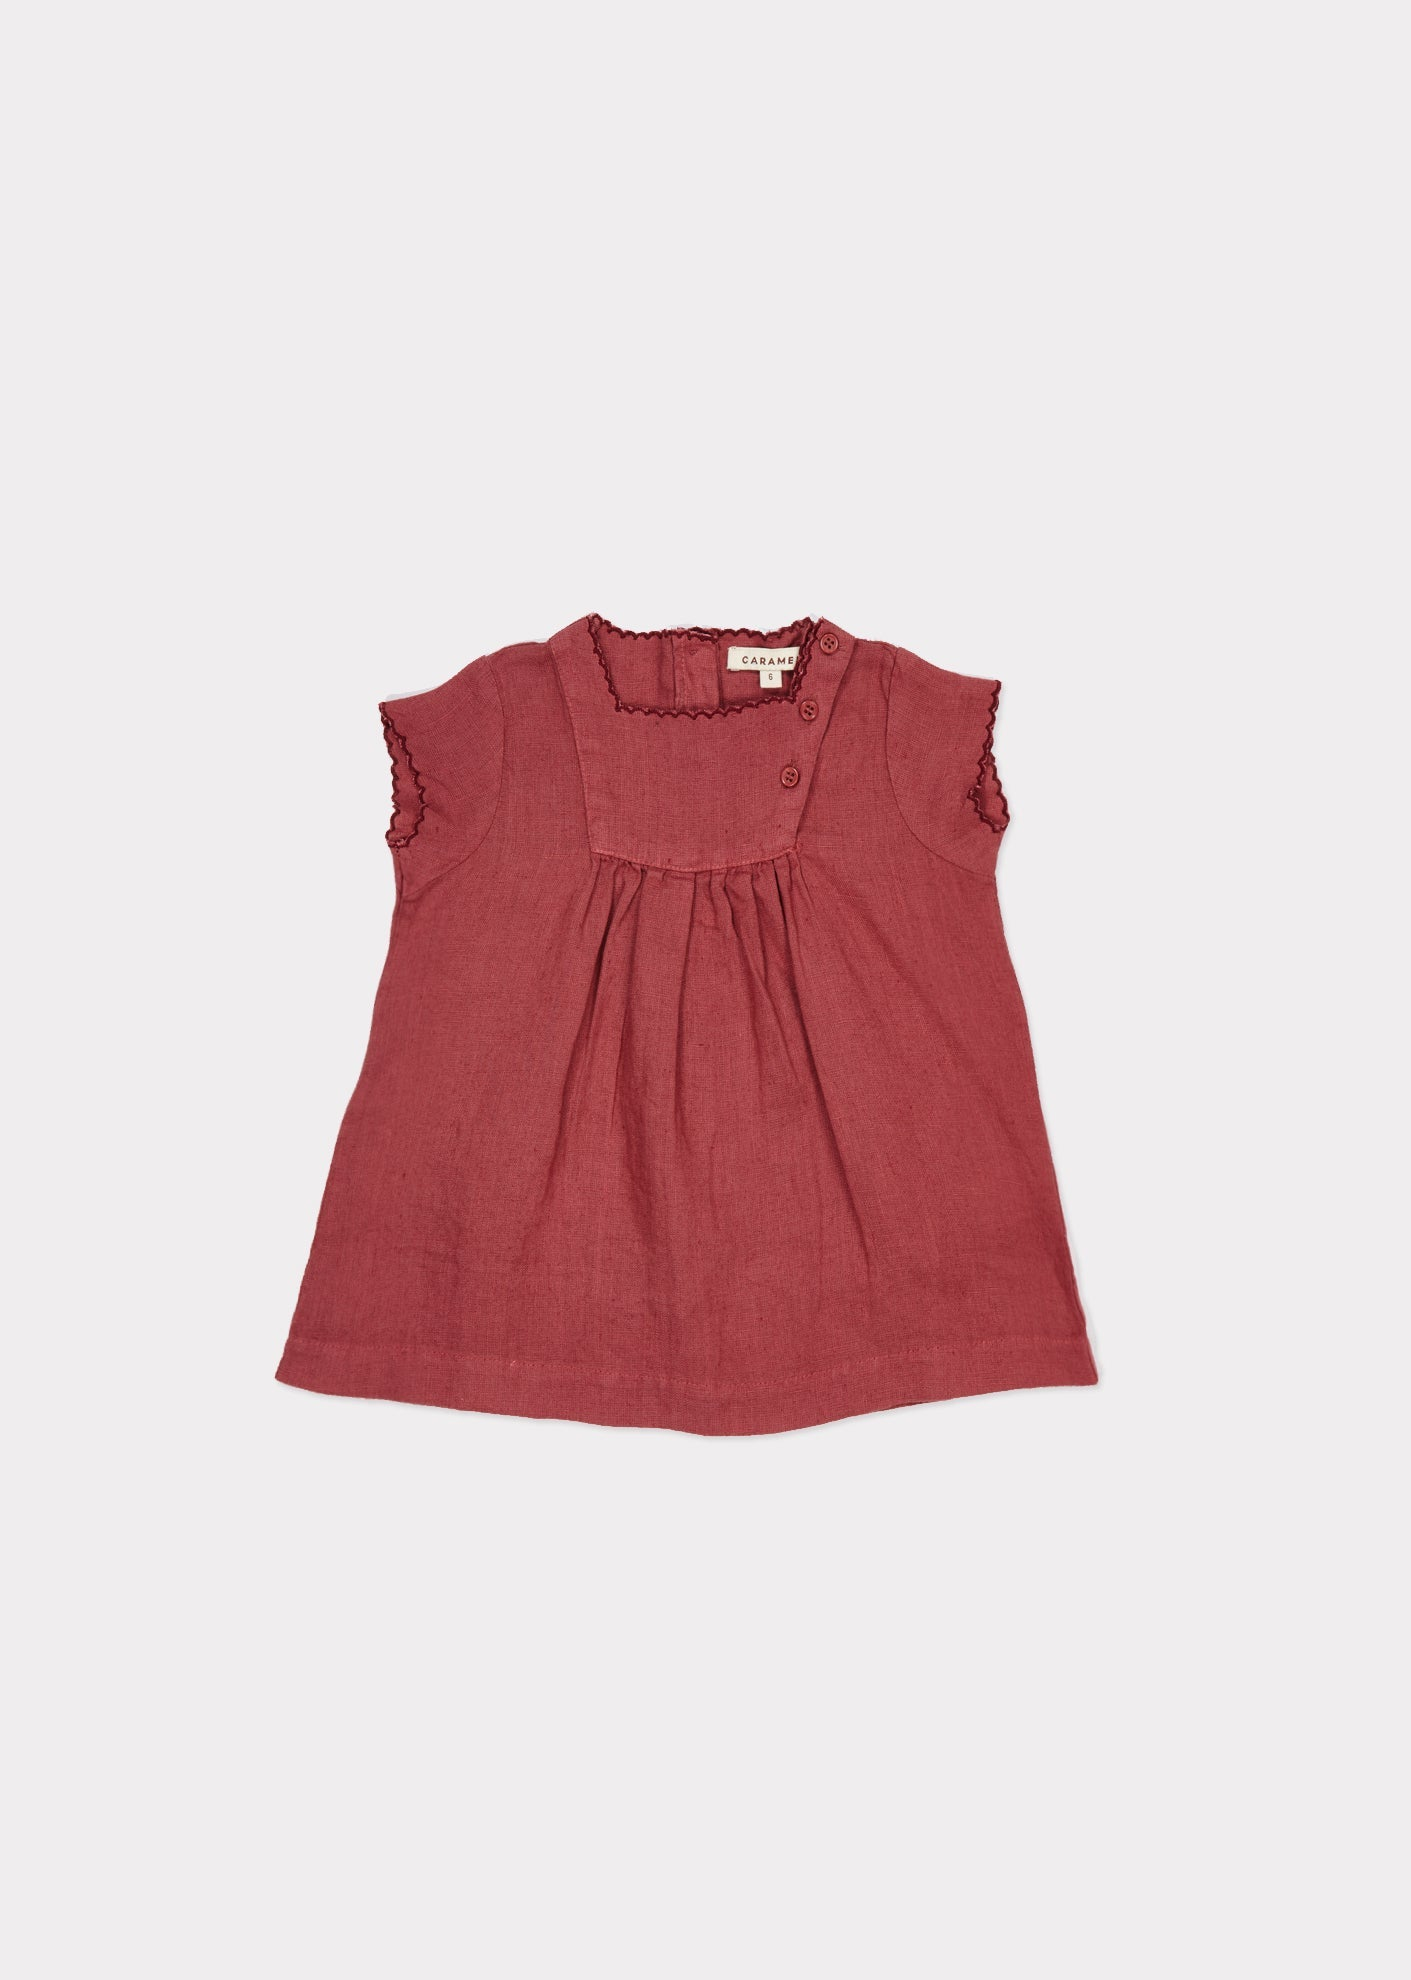 Lettuce Baby Dress, Rosebud